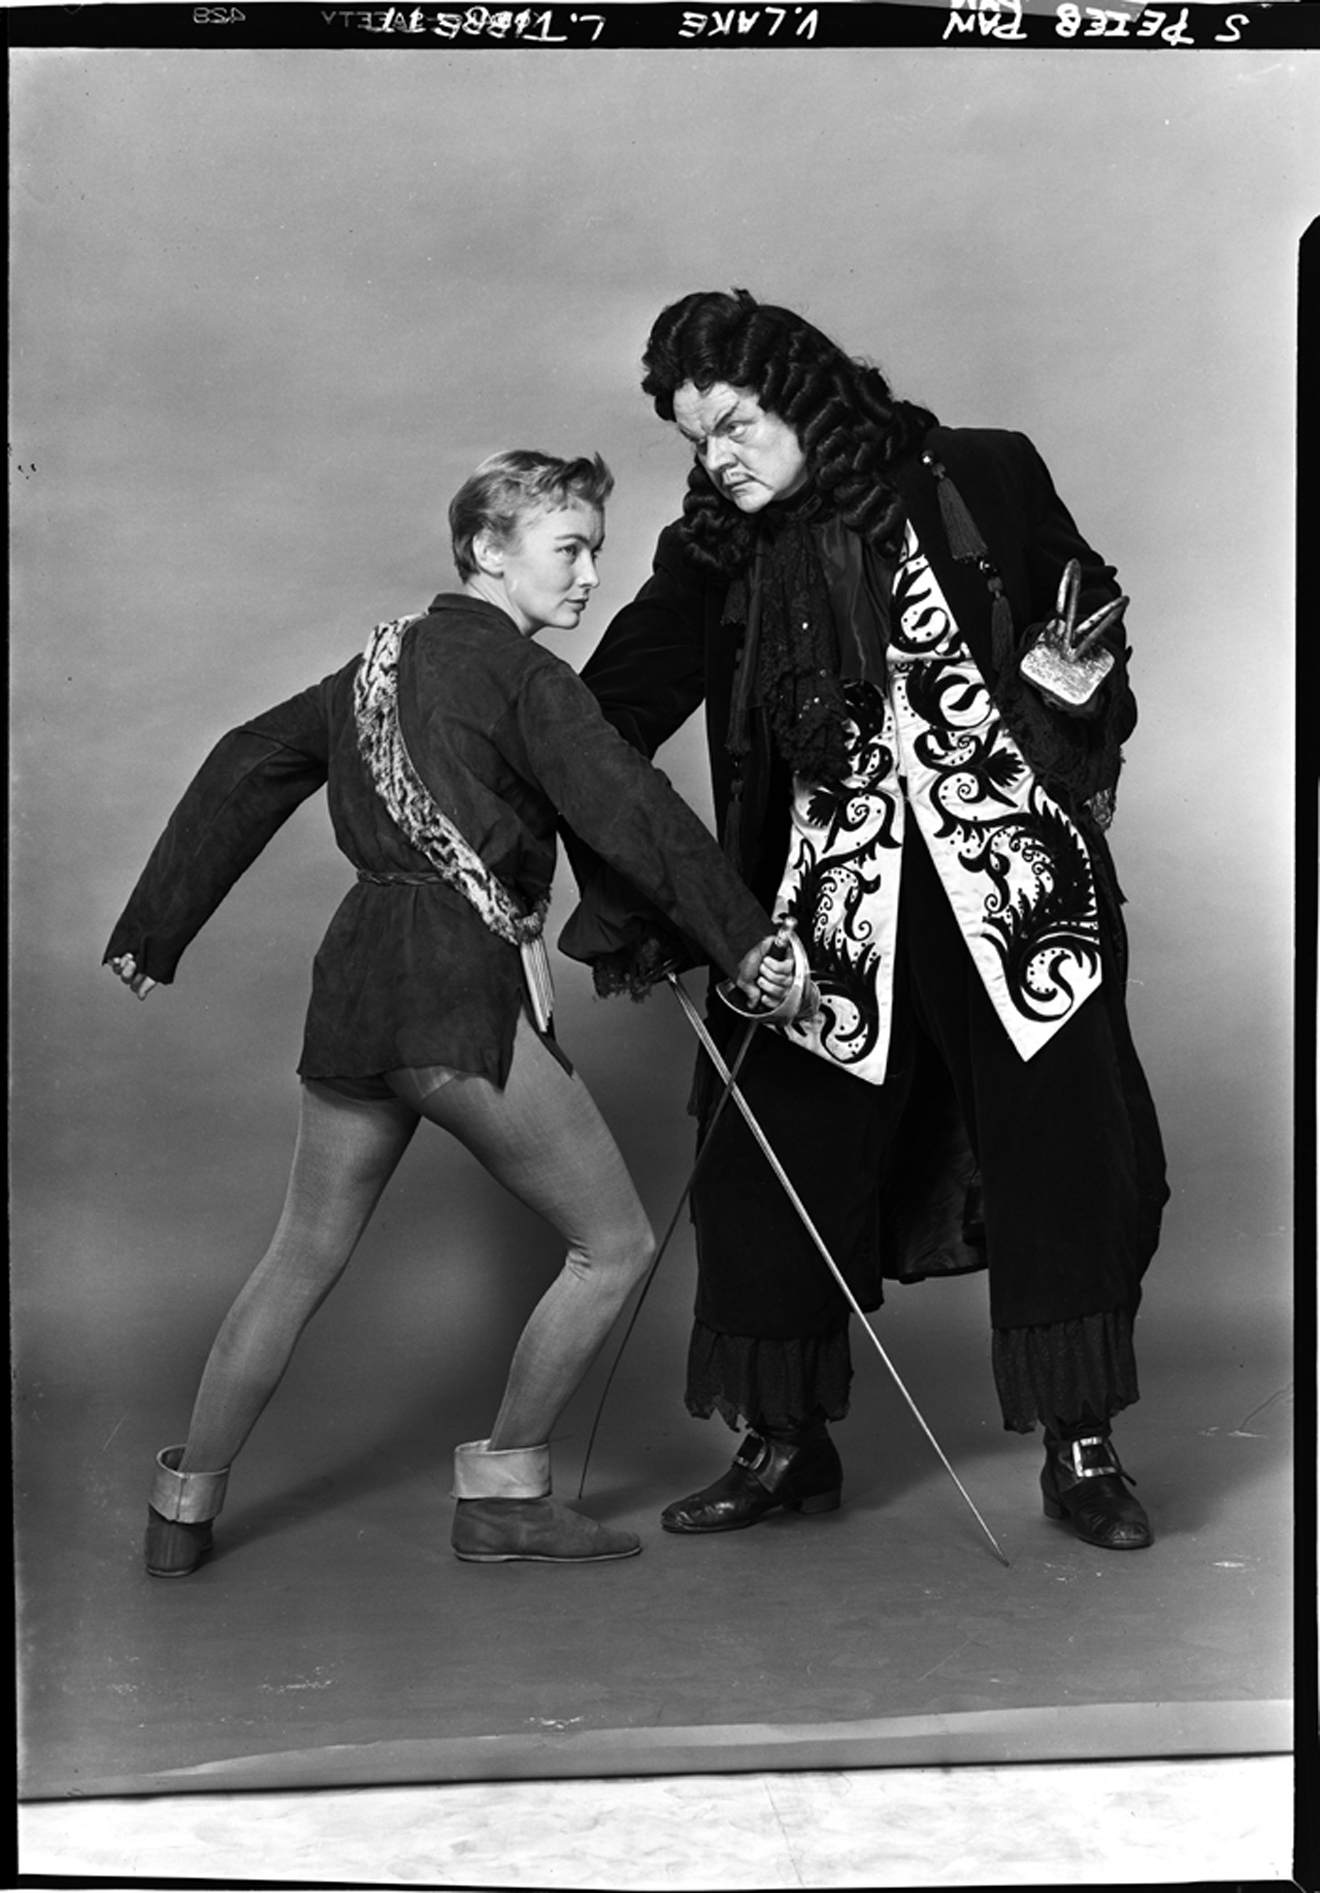 Lucas-Monroe. [Veronica Lake as Peter Pan and Lawrence Tibbett as Captain Hook], 1951. Museum of the City of New York. 80.104.1.2119